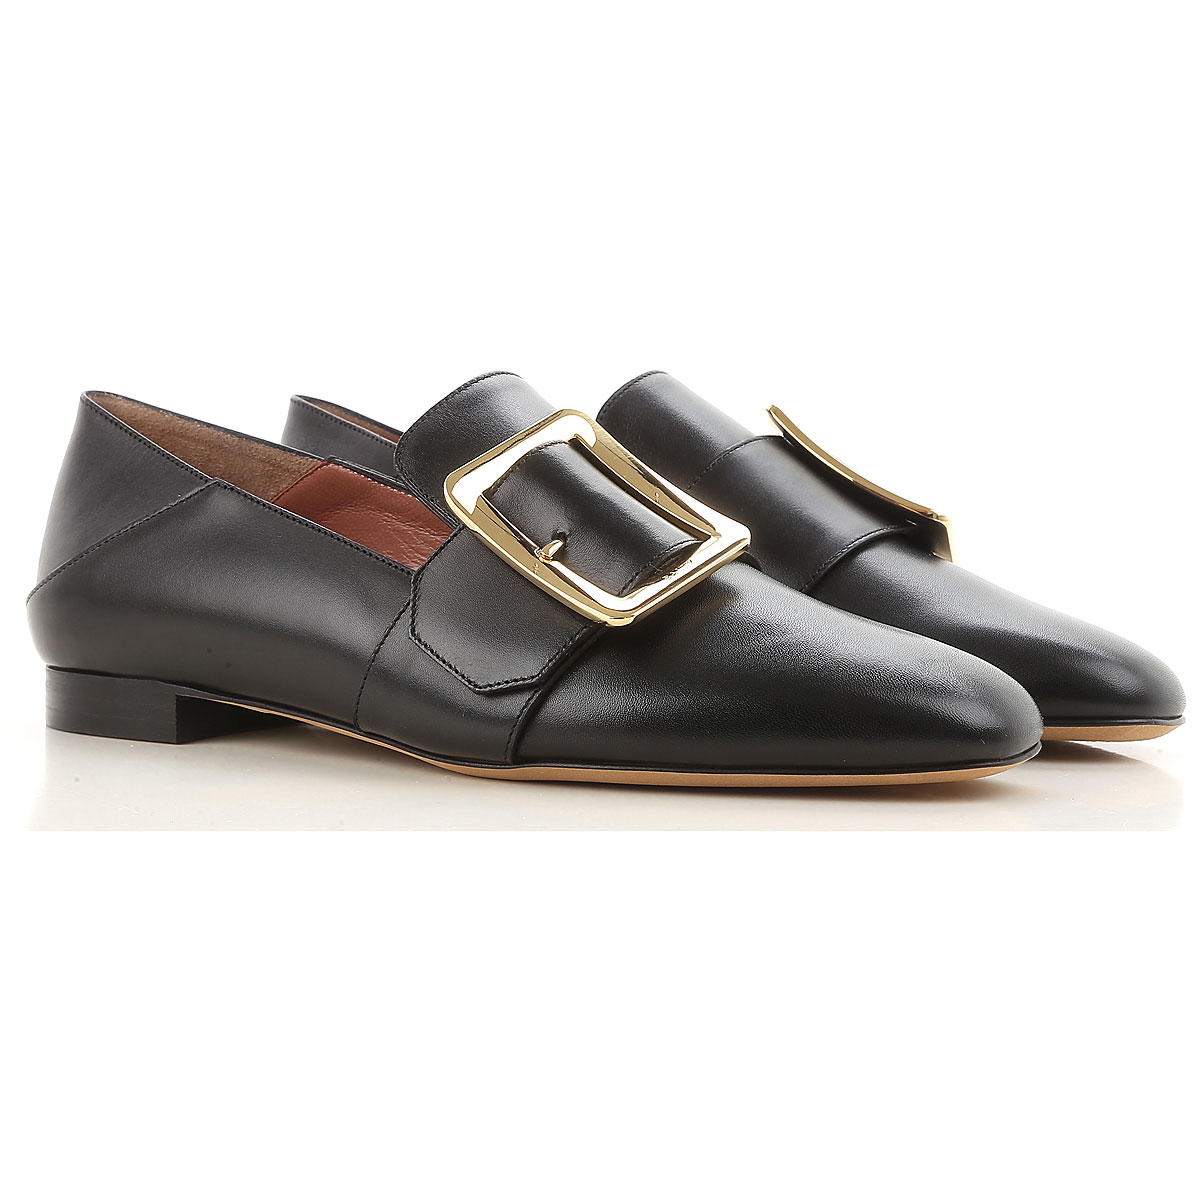 Image of Bally Loafers for Women, Black, Leather, 2017, 5